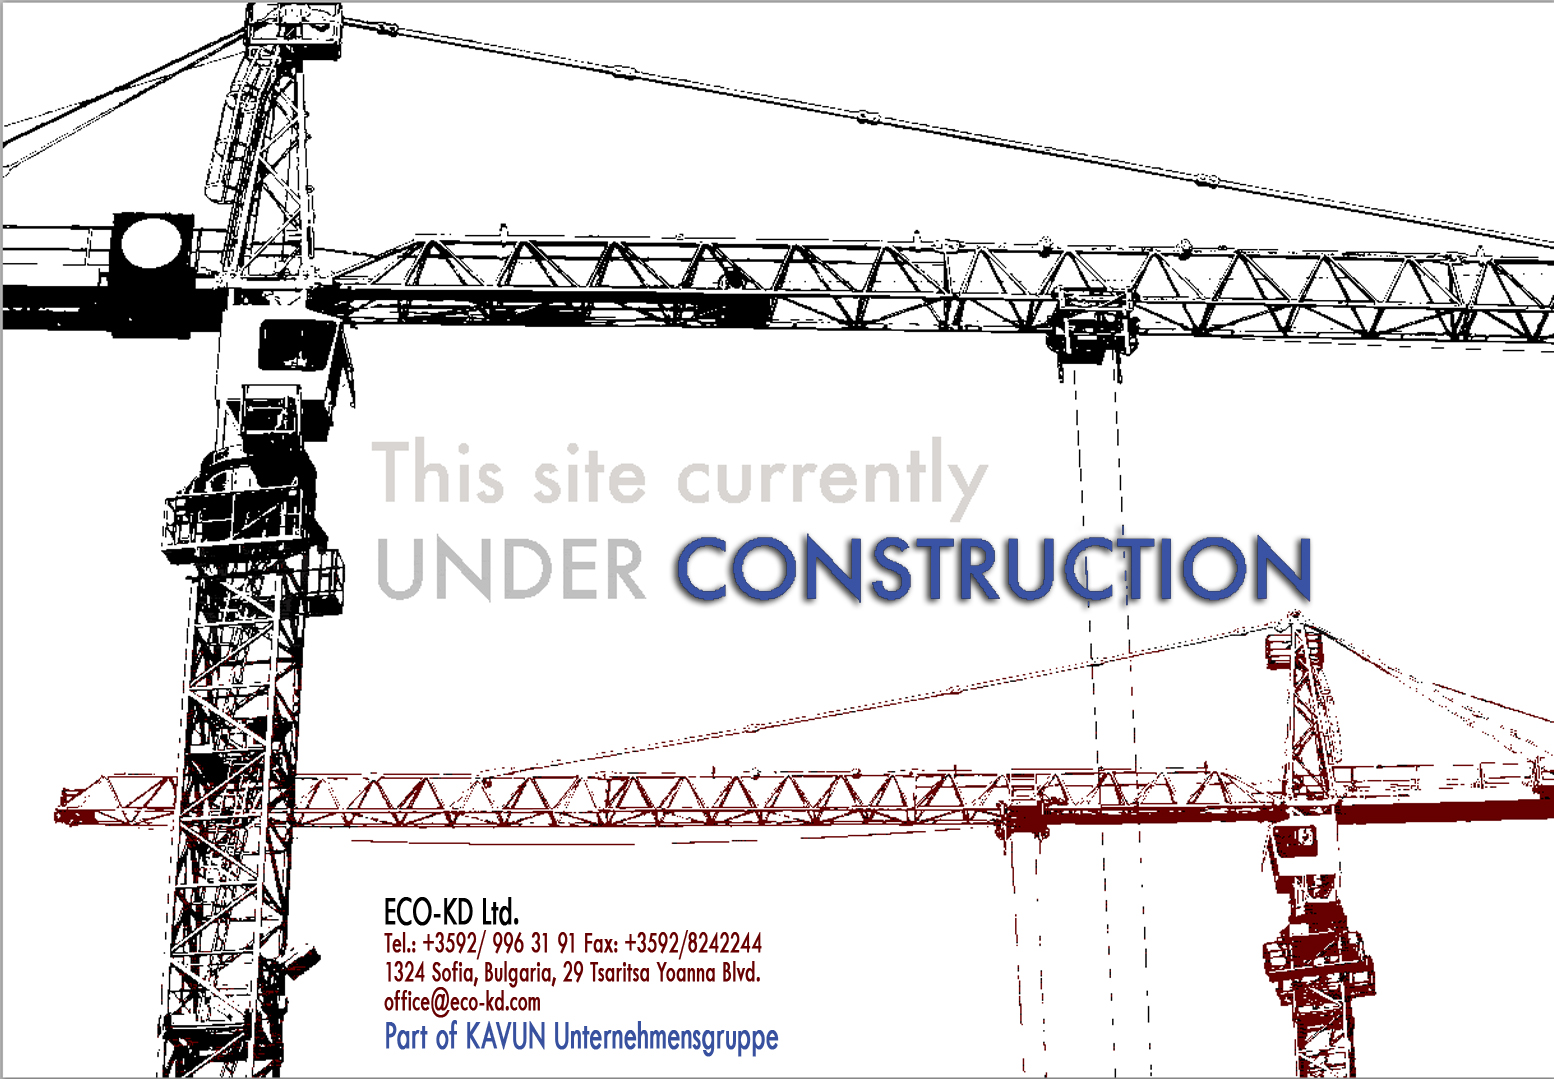 The site is under construction